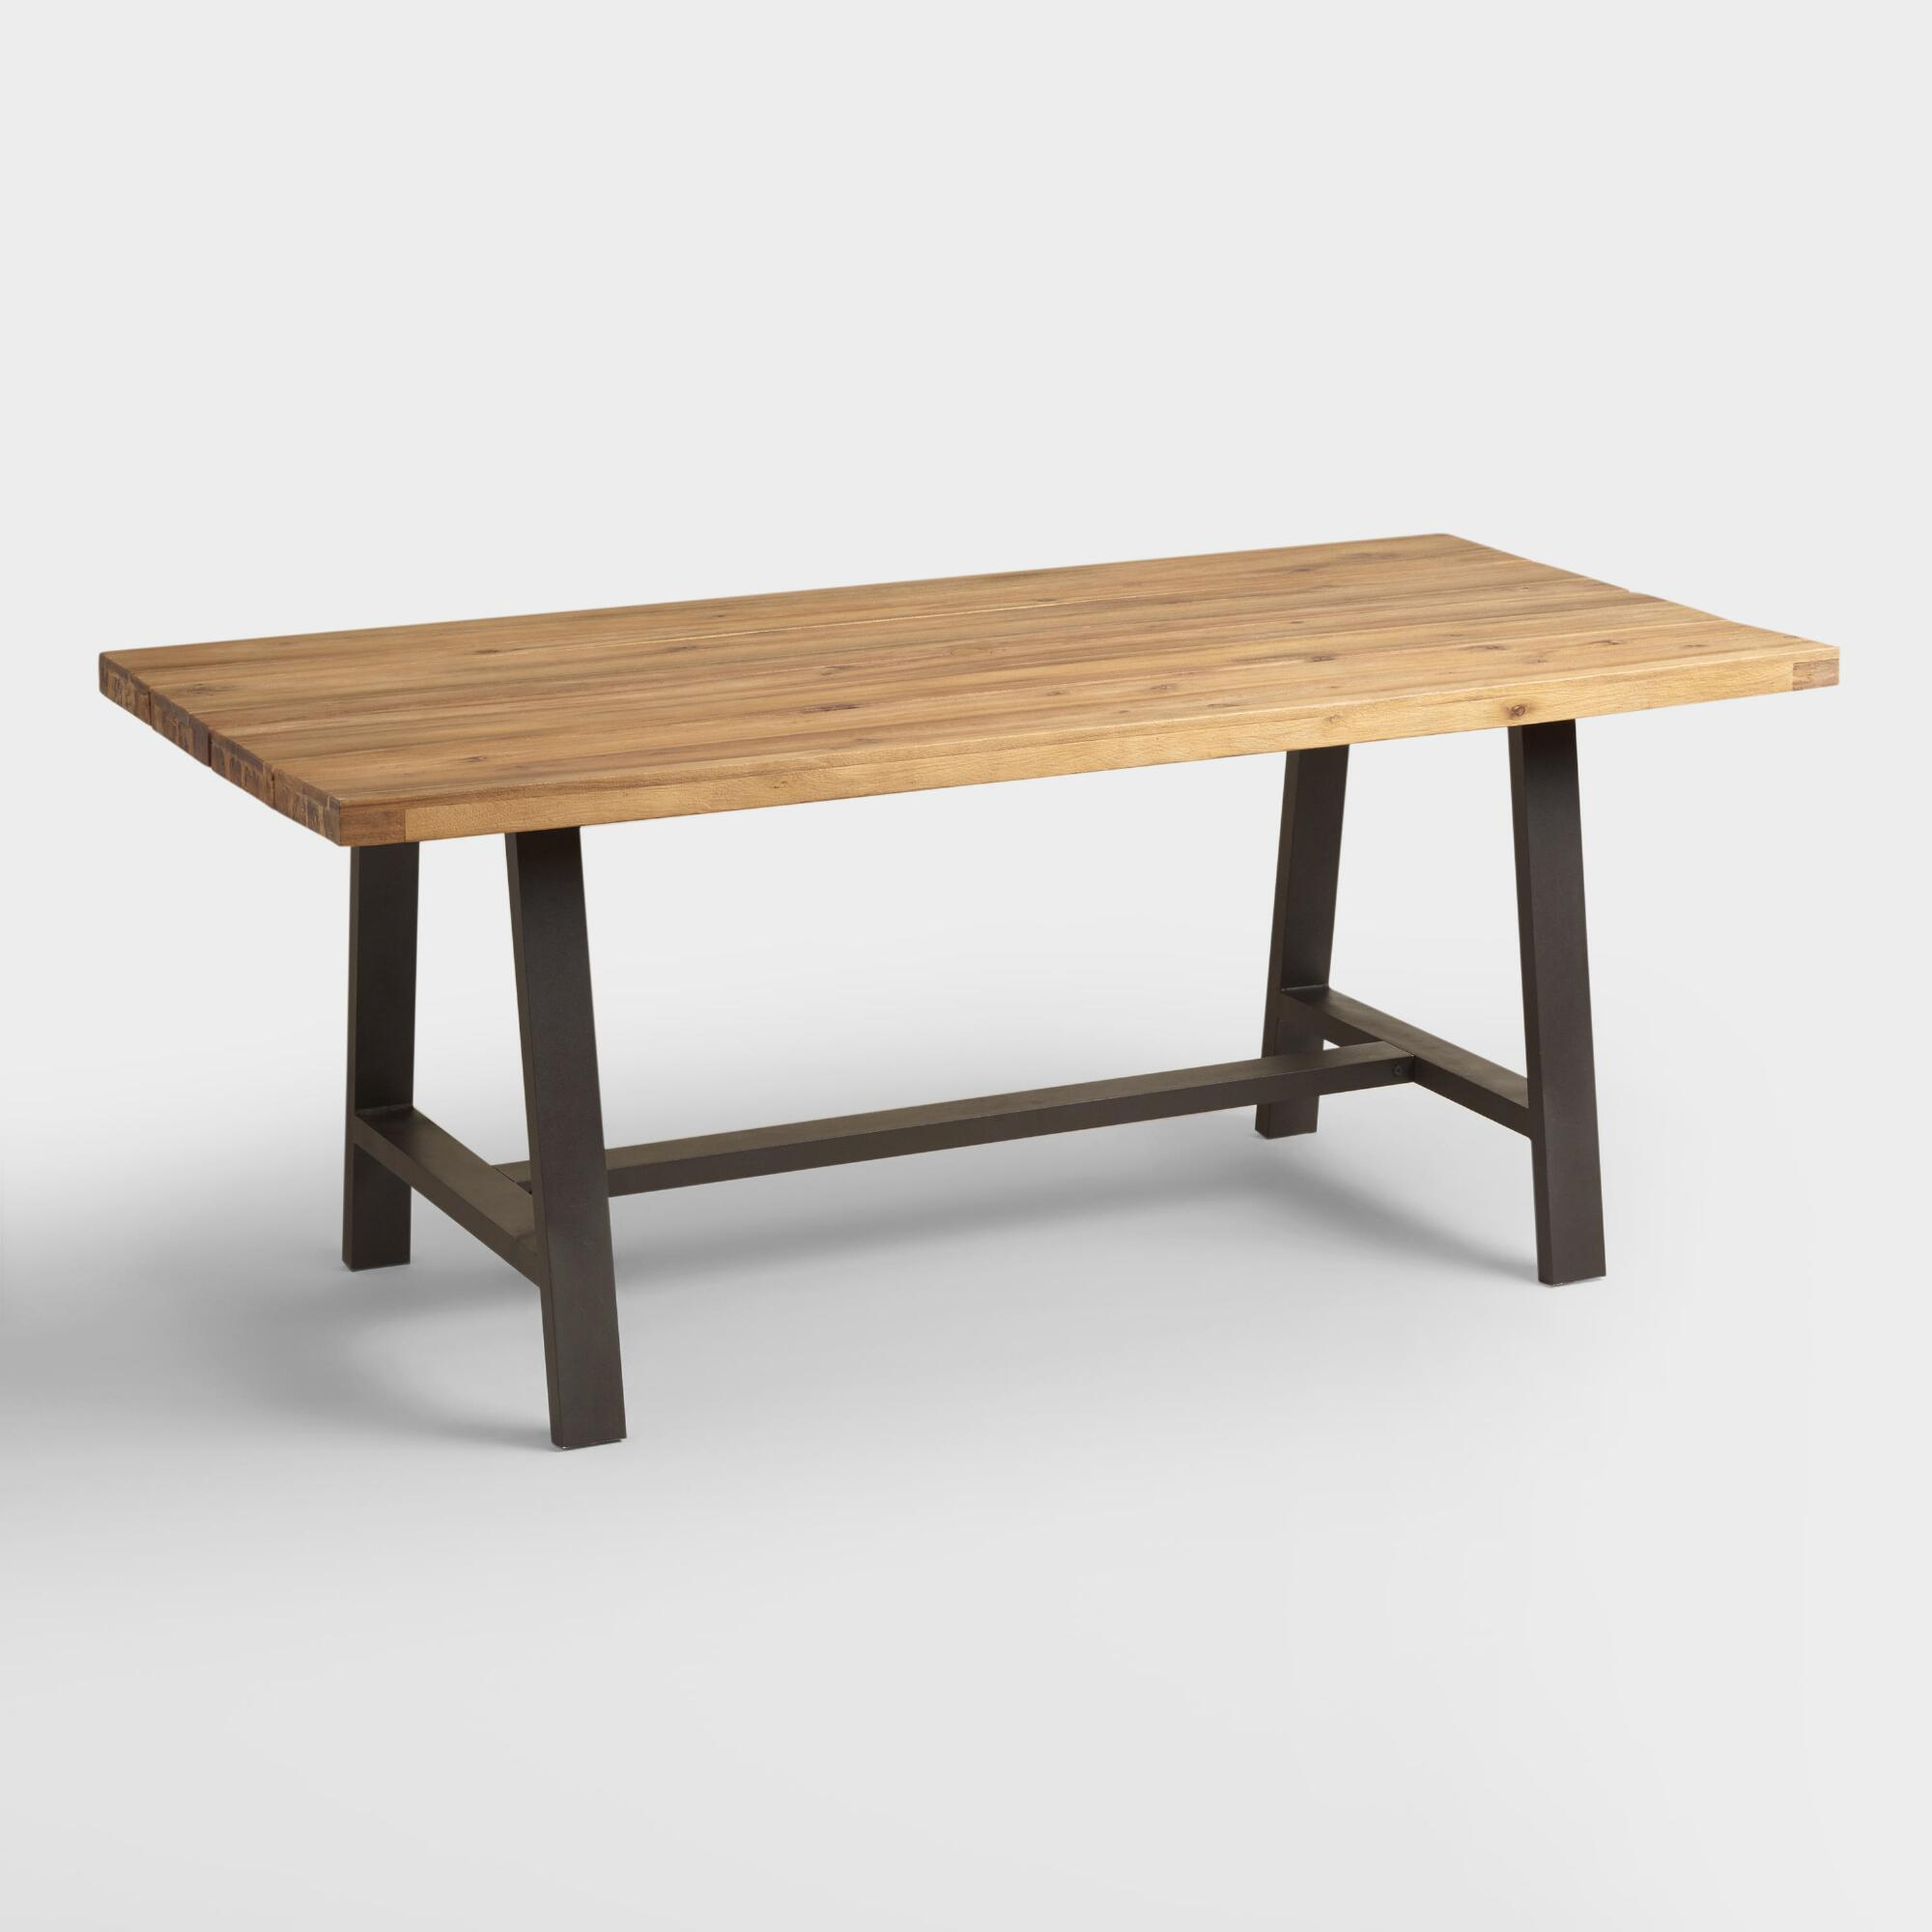 Wood and metal coronado a frame dining table world market